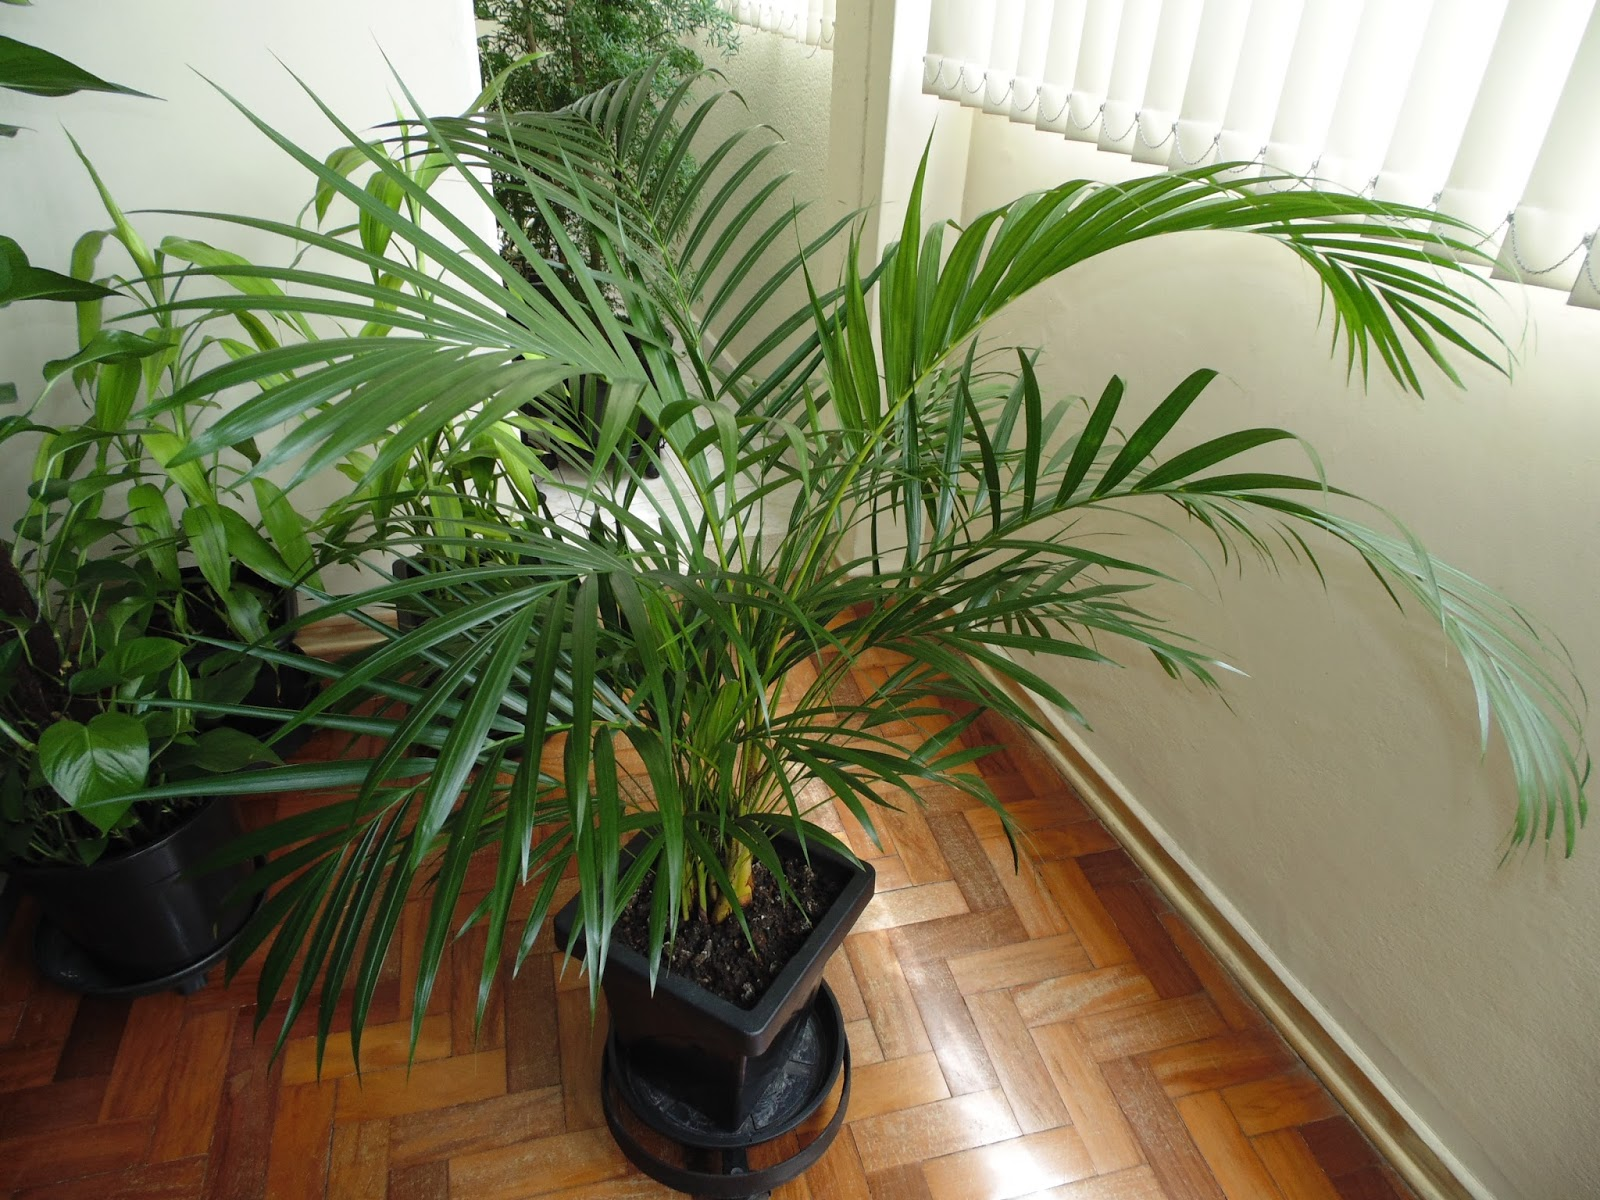 Plant Photos for Free: Dypsis Lutescens - A Small Palm Tree